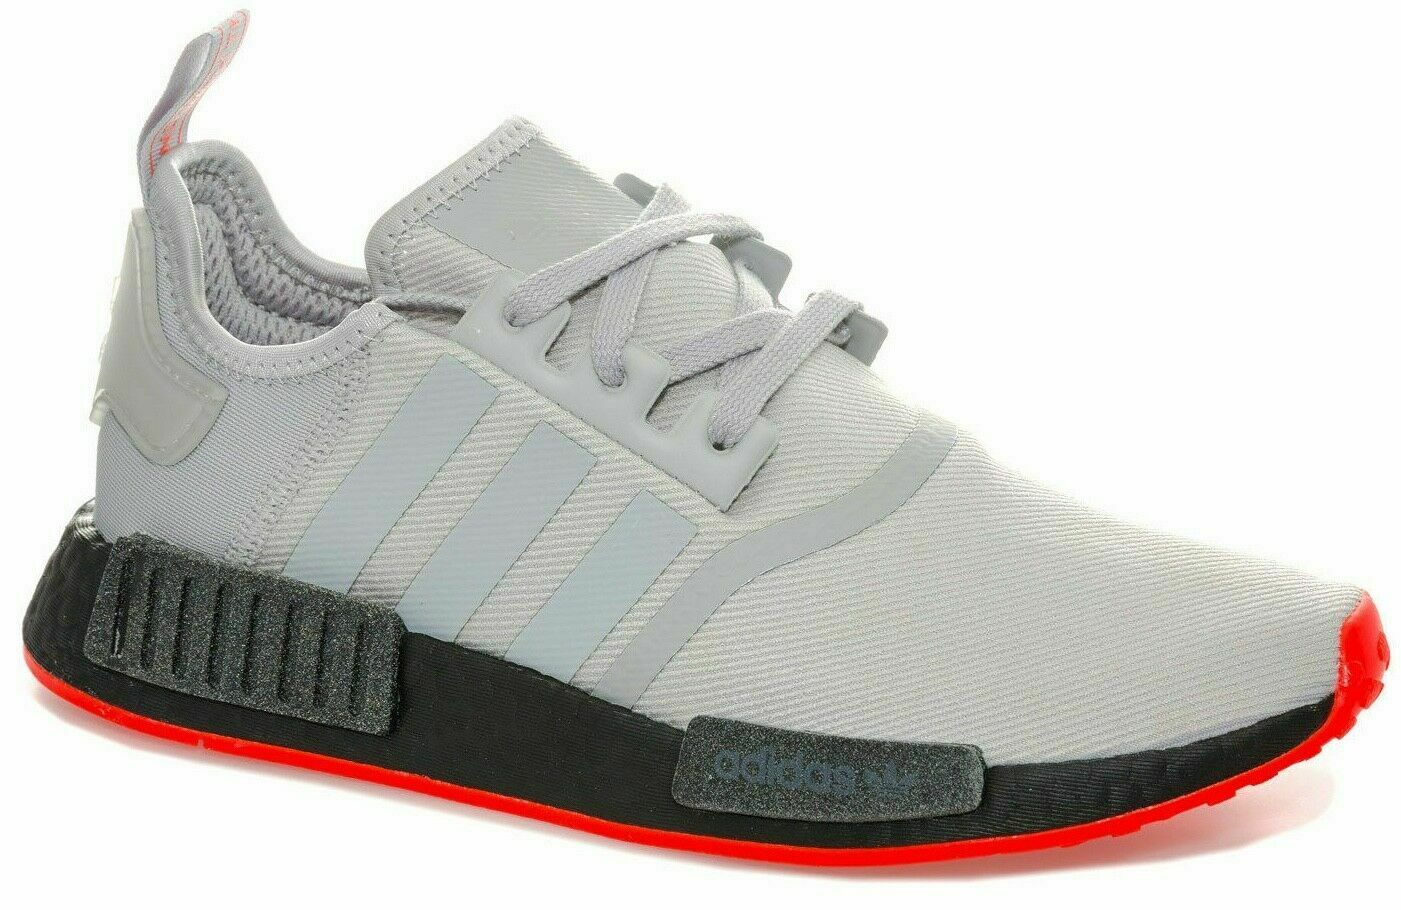 adidas Originals NMD_R1 GREY BLACK Boost Casual Trainers Size UK 6.5 11.5